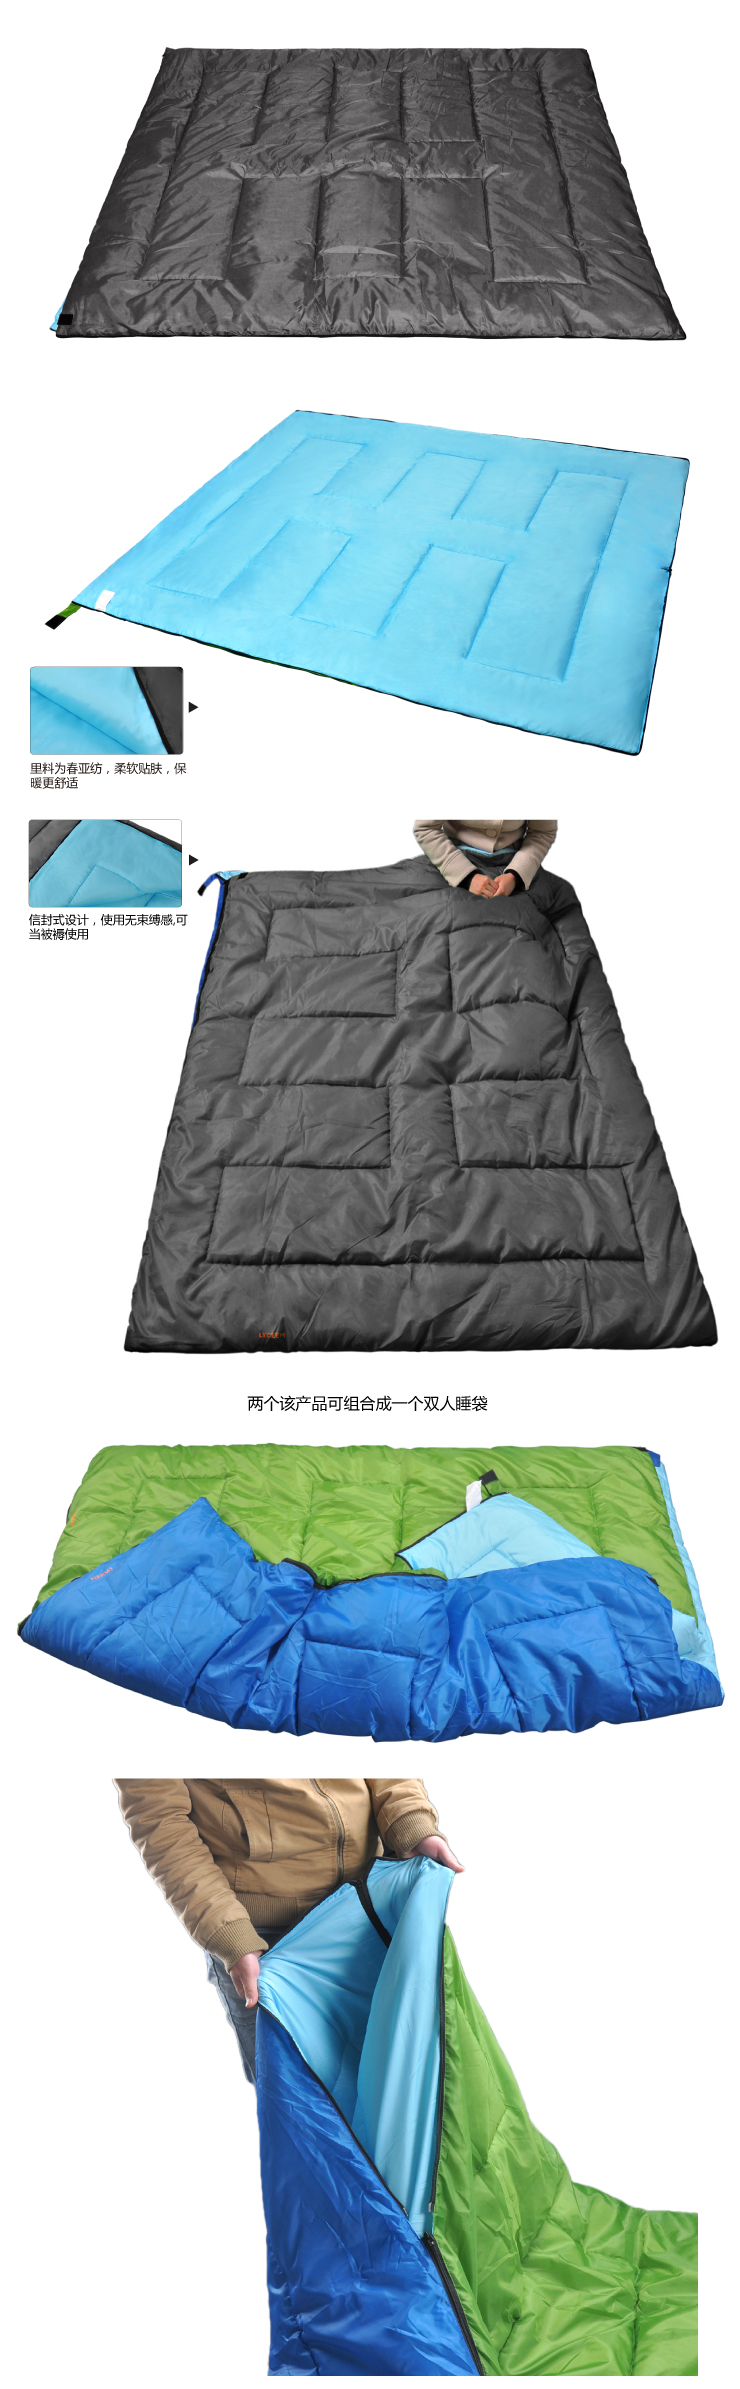 LYCEEM Blue Orange Sleep Envelope Sleeping Bag Olive